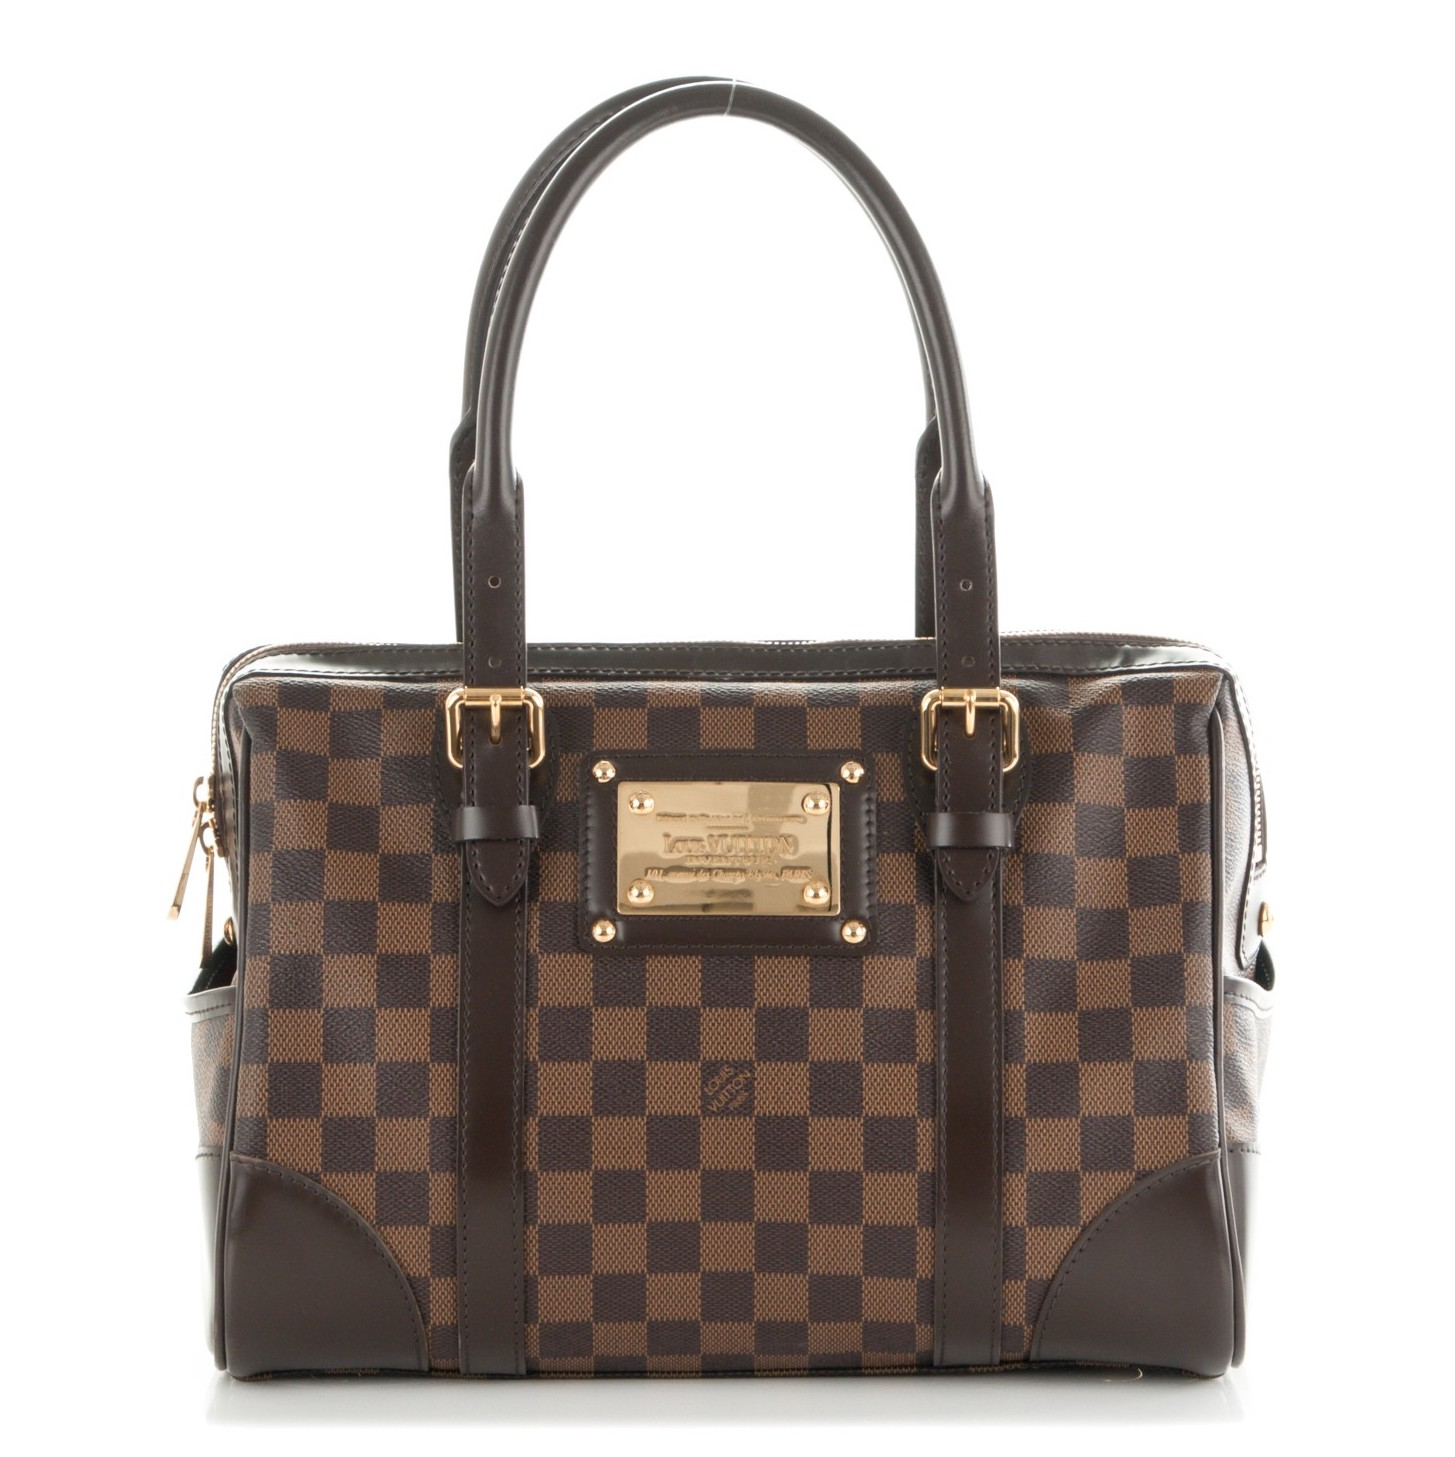 Louis Vuitton Berkeley Satchel Damier Ebene